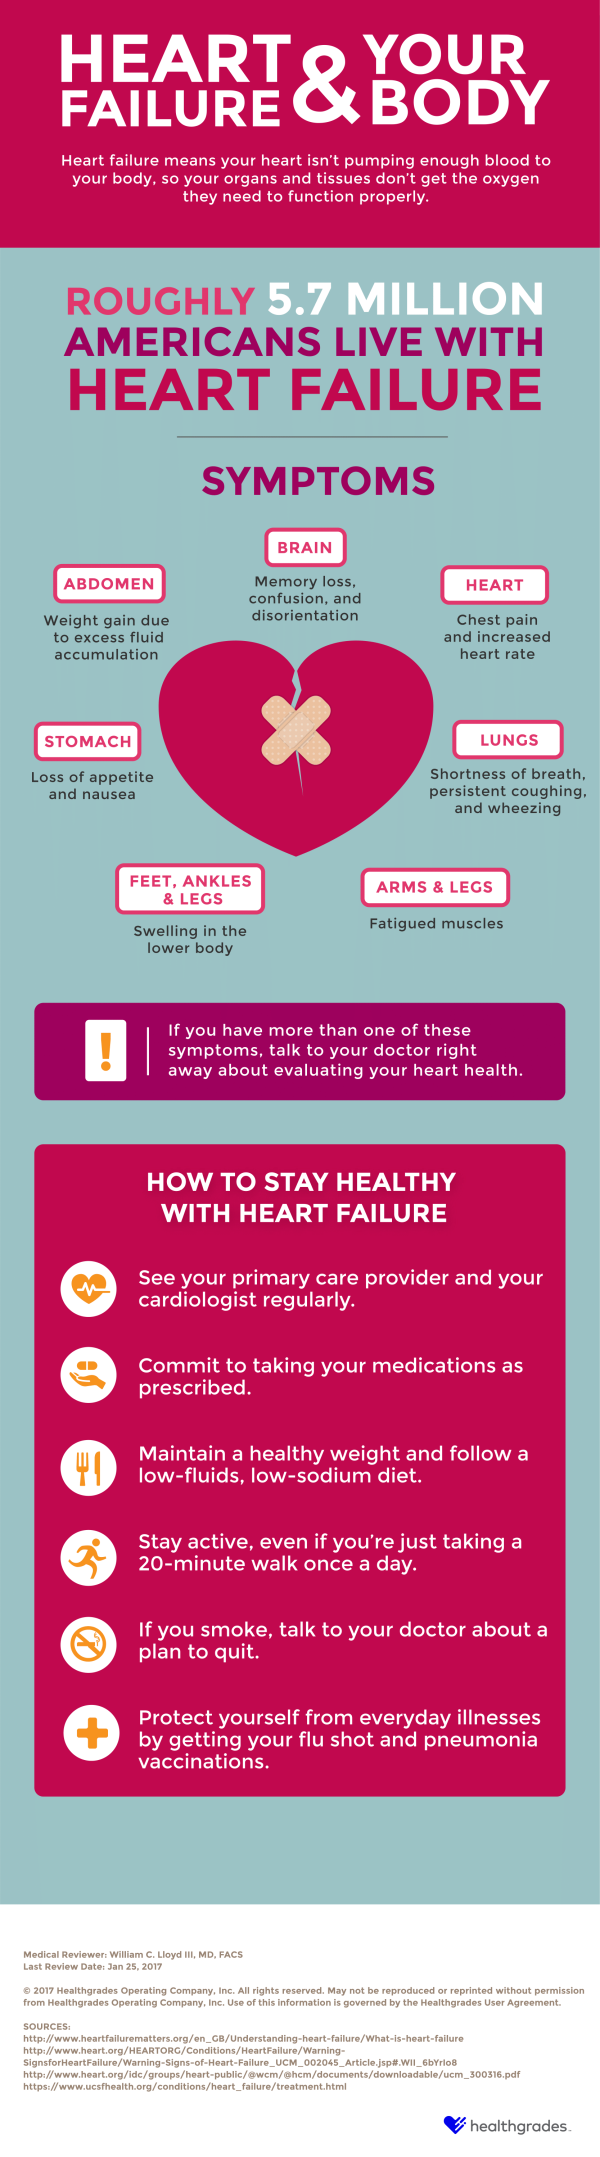 Heart Failure and Your Body